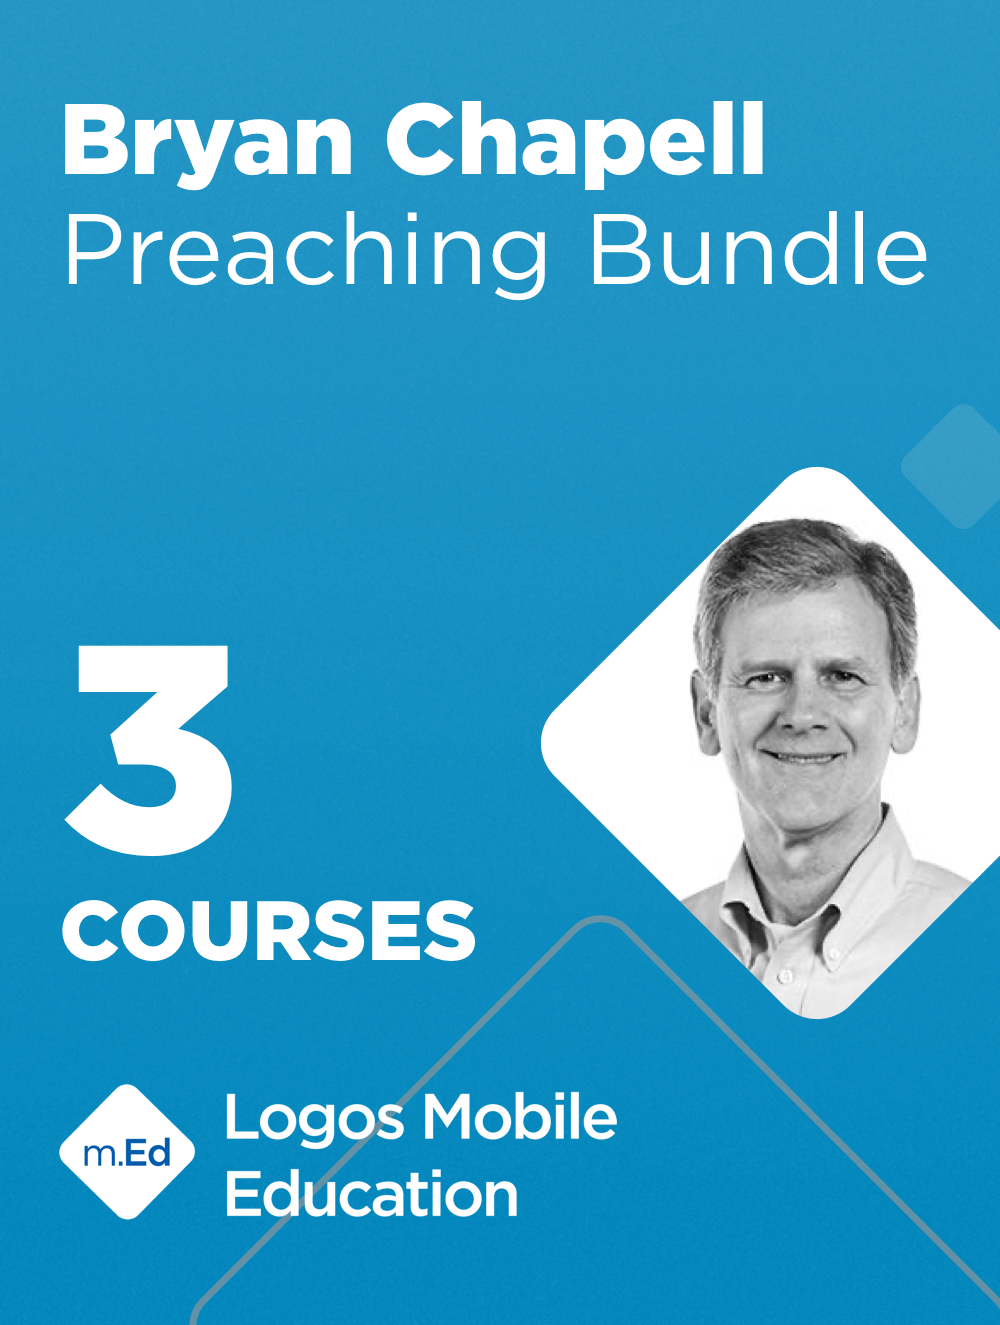 Mobile Ed: Bryan Chapell Preaching Bundle (3 courses)